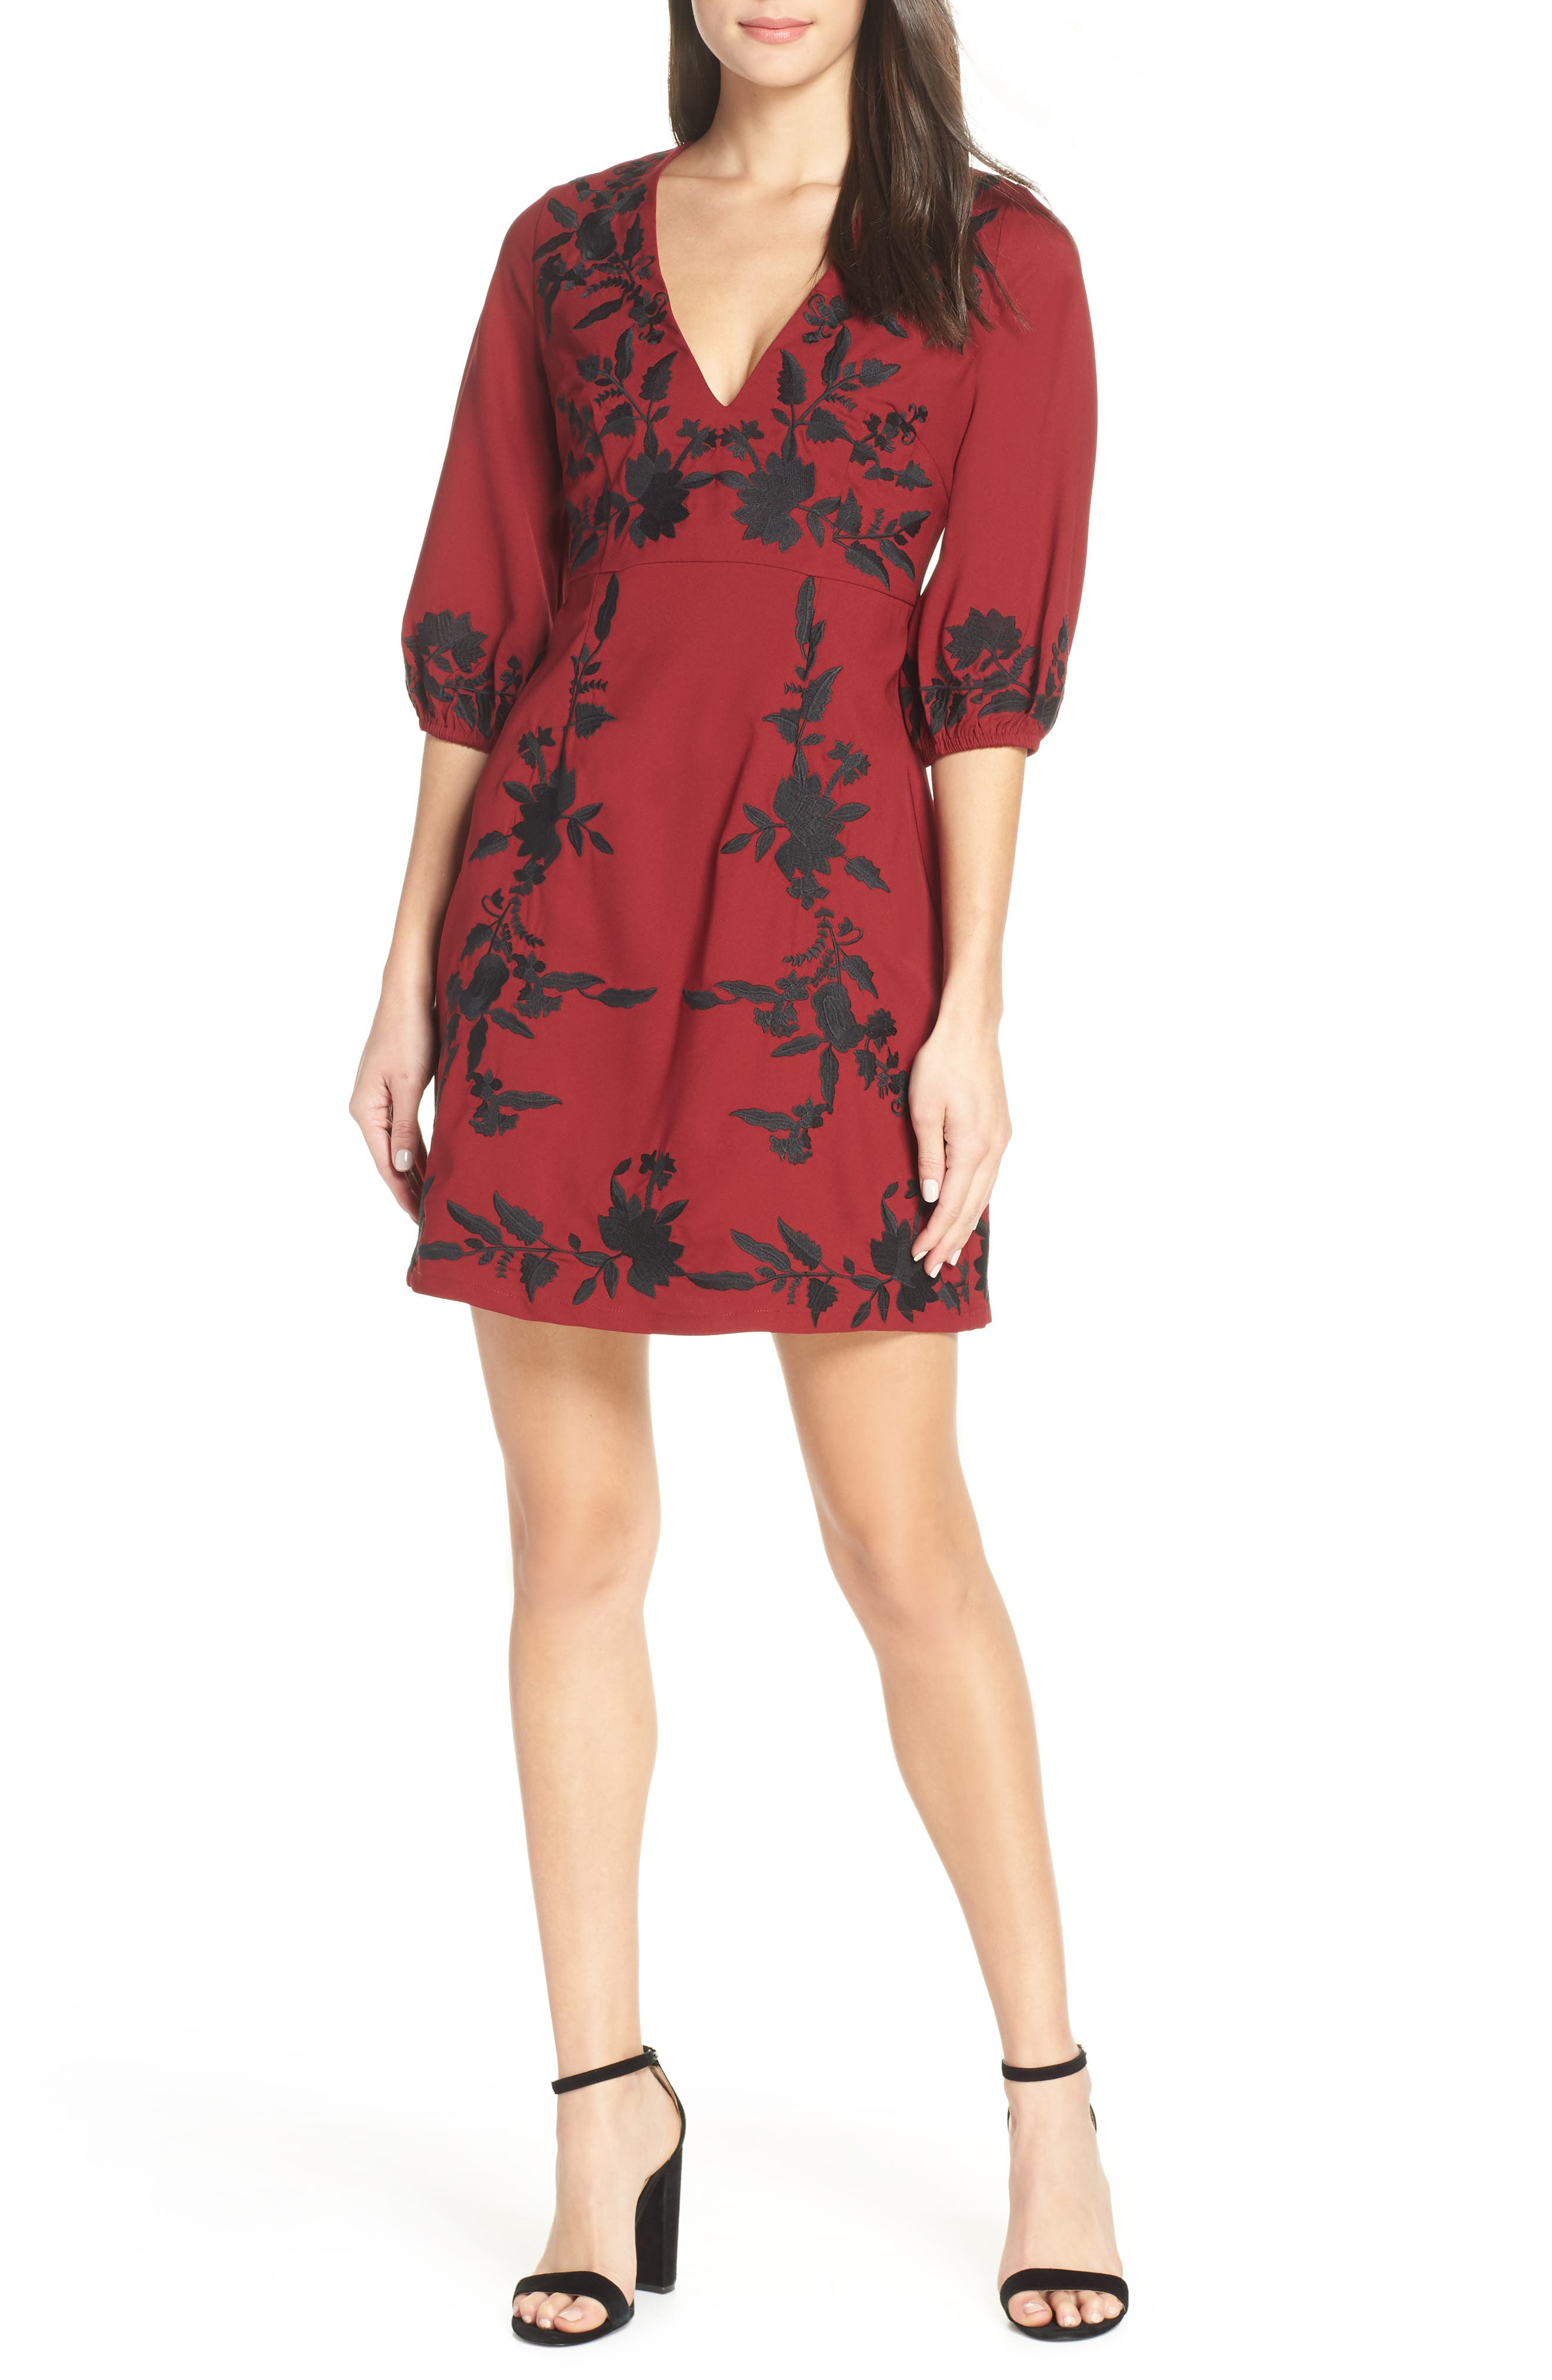 FOXIEDOX Melia Embroidered Cocktail Dress in Burgundy